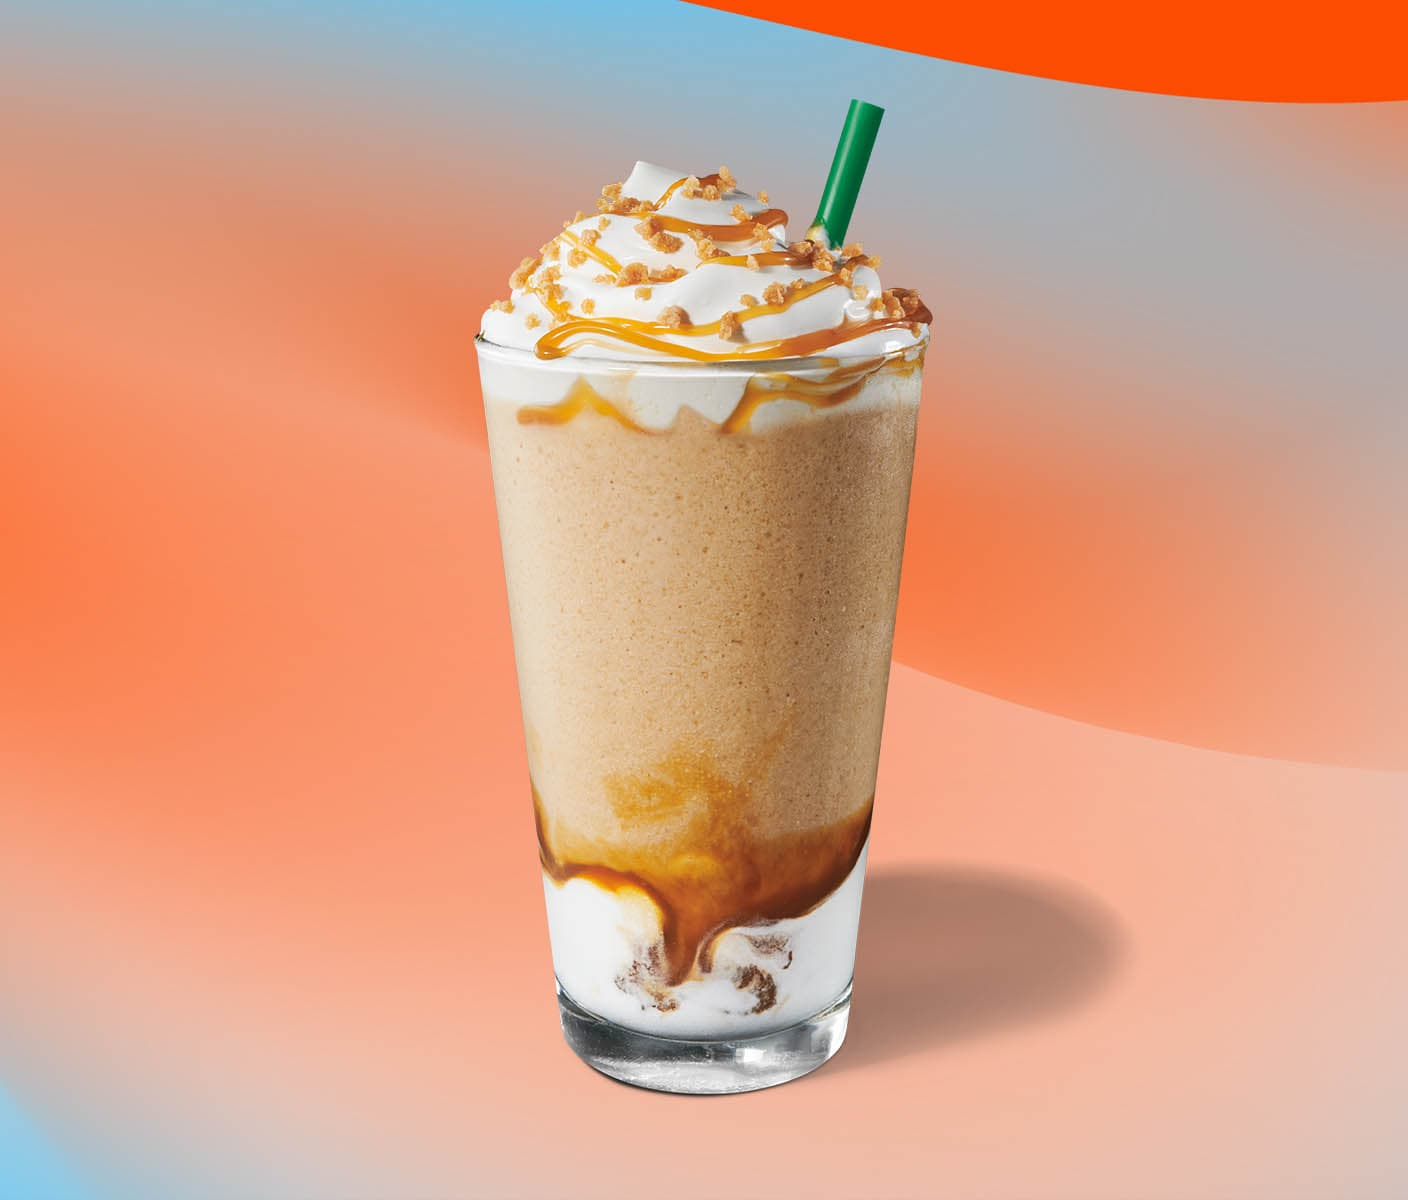 Blended beverage with caramel drizzle topping